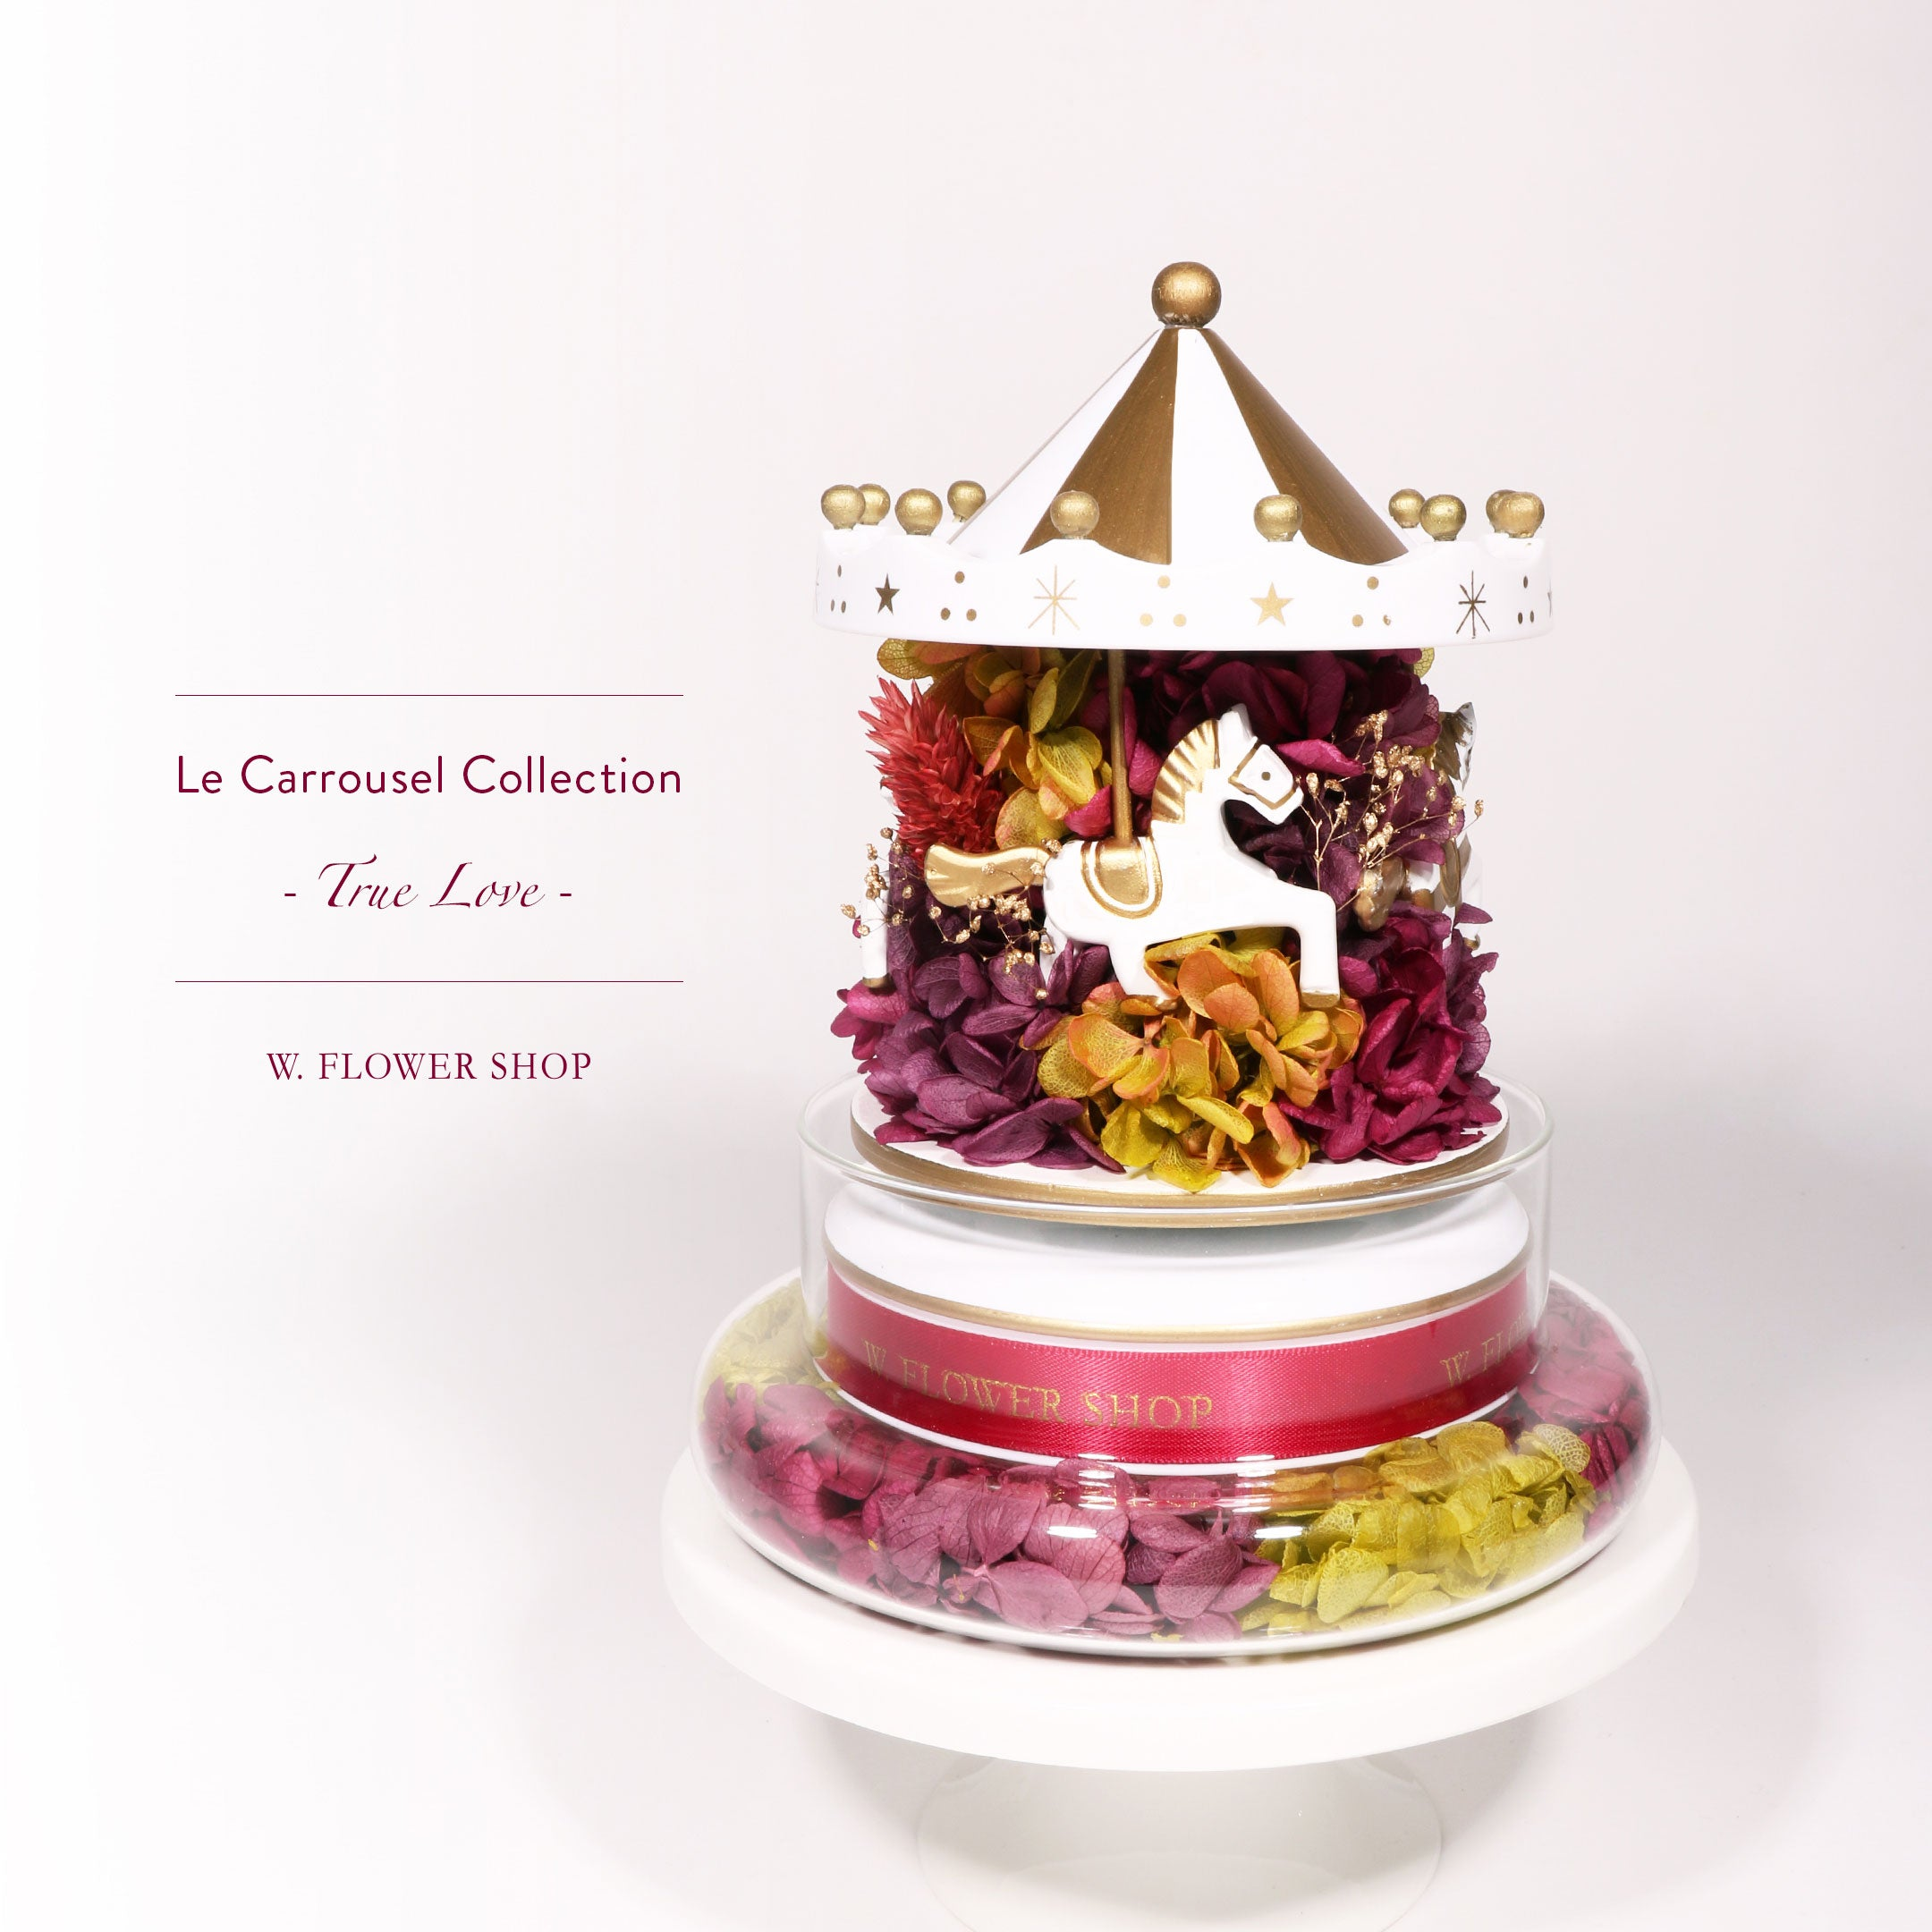 Le Carrousel Collection - True Love